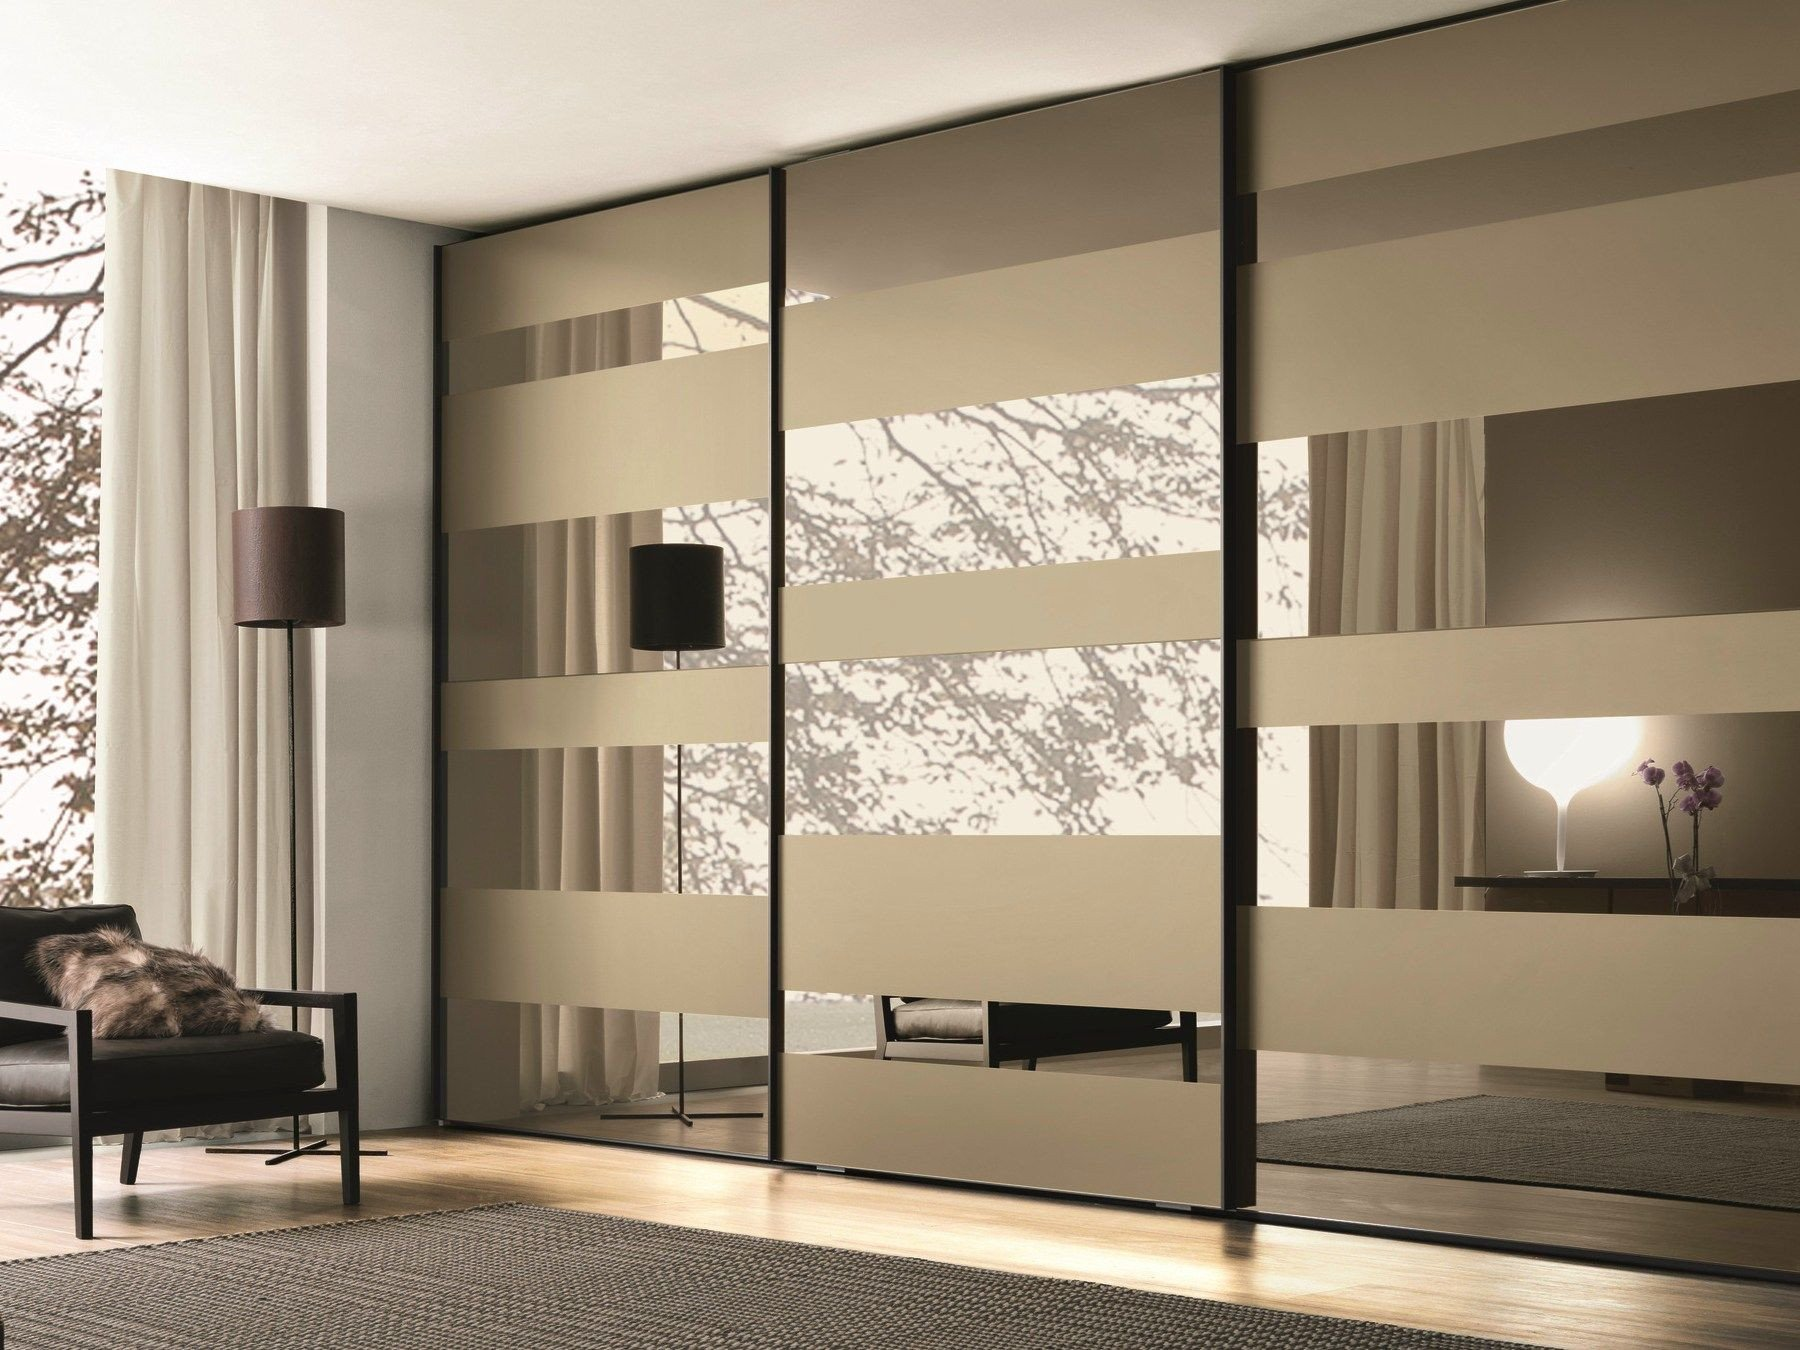 Sliding Doors for Bedroom Luxury Lacquered Wooden Wardrobe with Sliding Doors Segmenta New